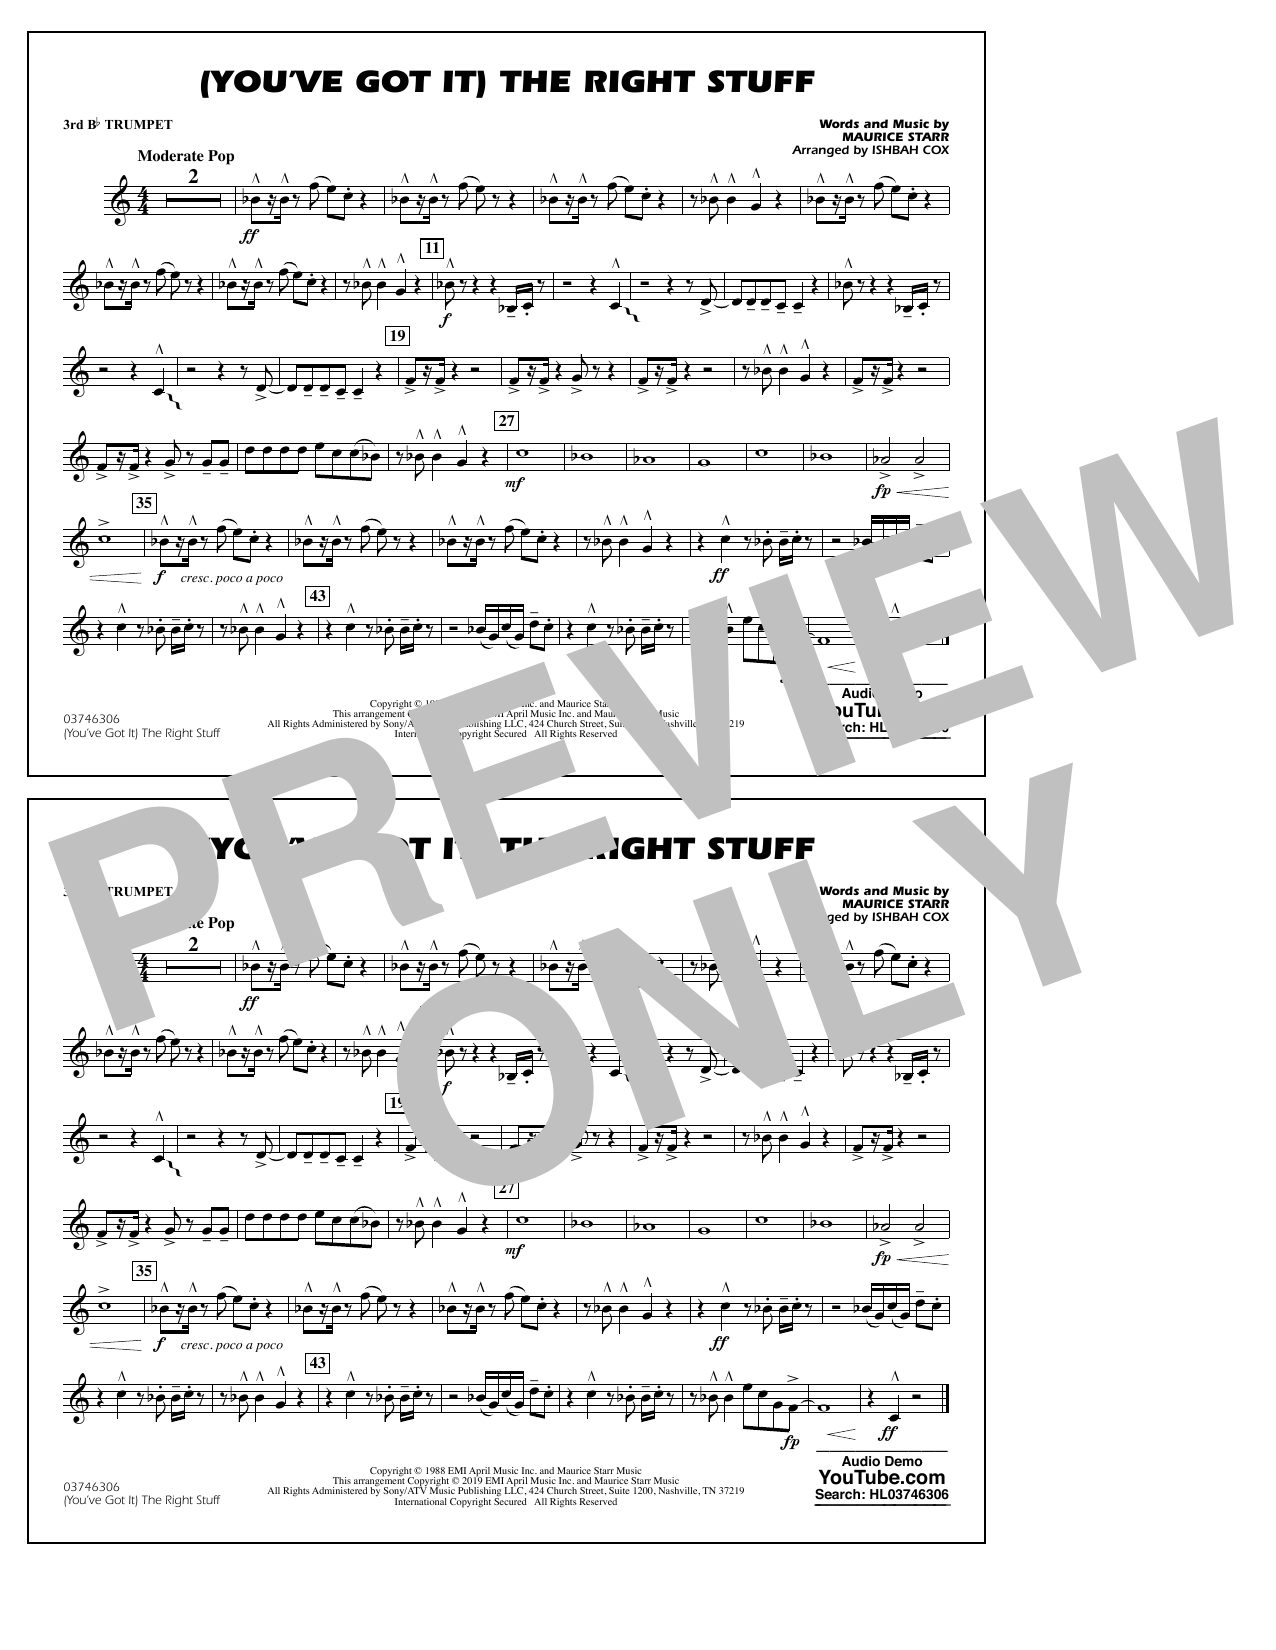 New Kids On The Block (You've Got It) The Right Stuff (arr. Ishbah Cox) - 3rd Bb Trumpet sheet music preview music notes and score for Marching Band including 1 page(s)